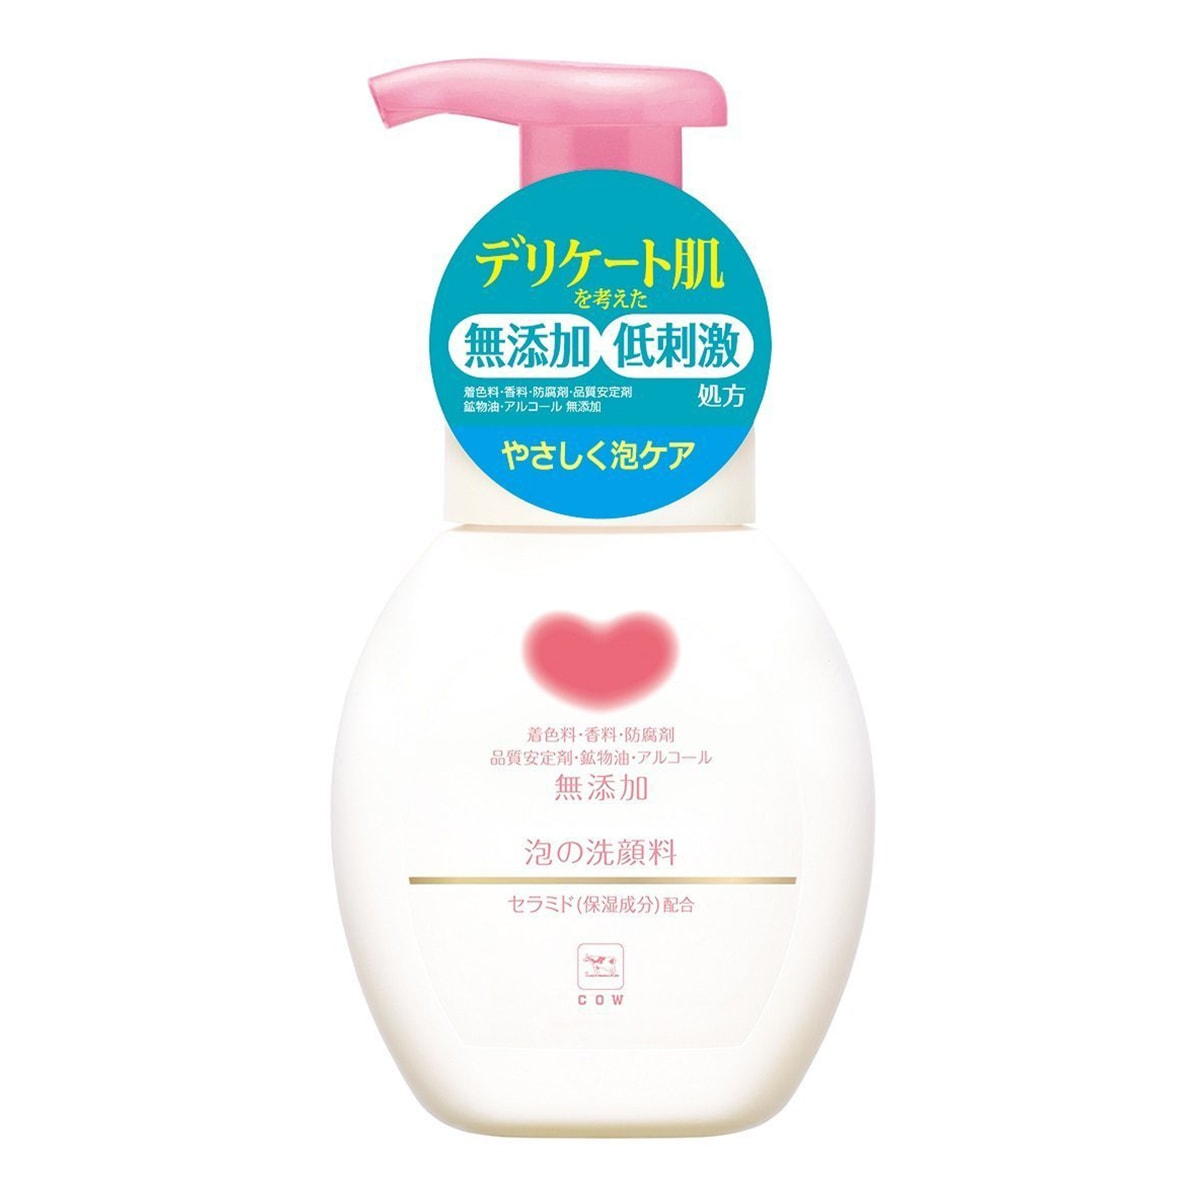 COW Face Wash Cleanser 200ml